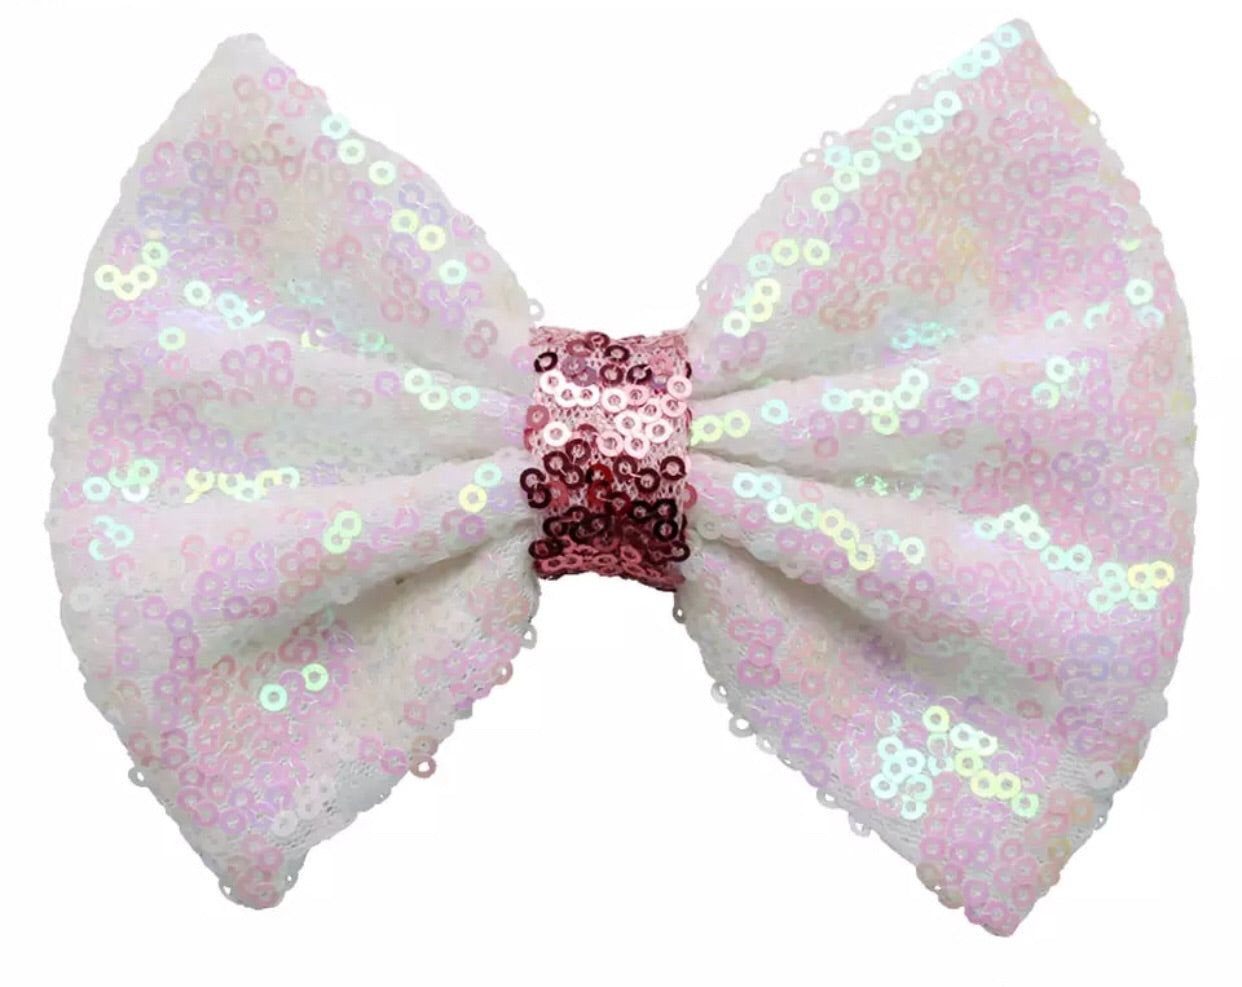 Large Sequin Bow - White with Light Pink center - shabbyflowers.com